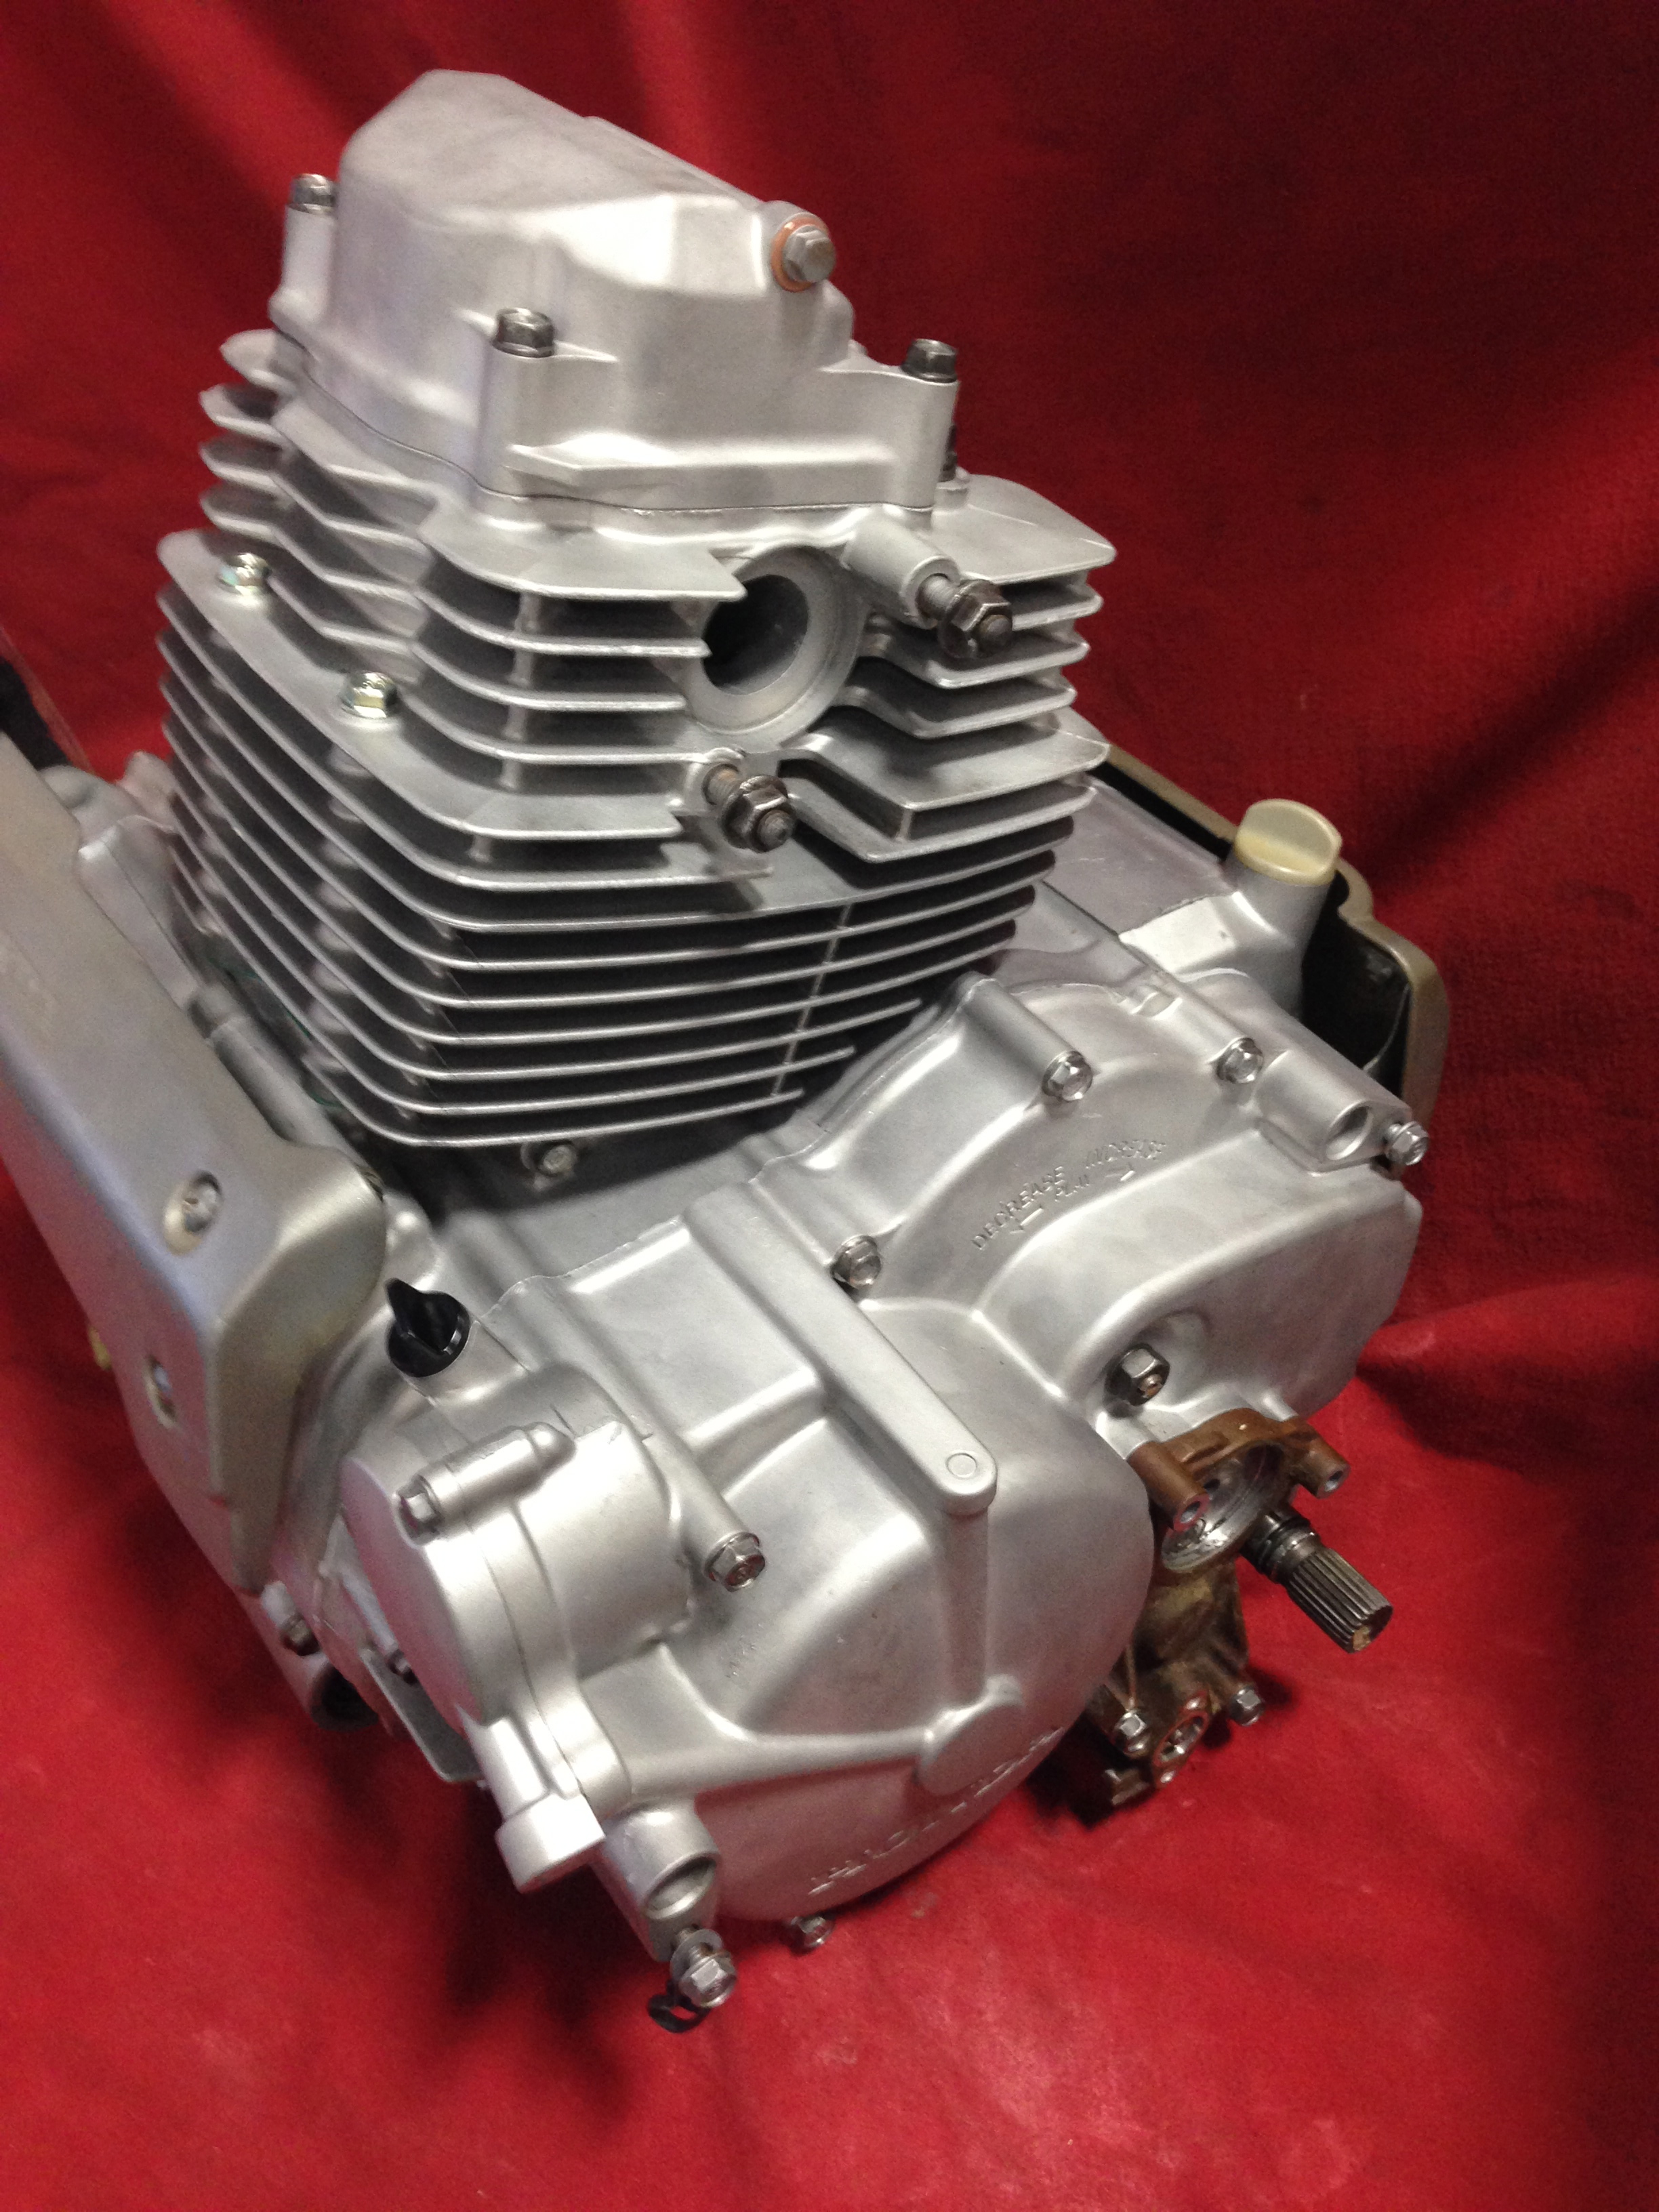 honda car engines v small domain image engine libreshot photos public vtec tec free